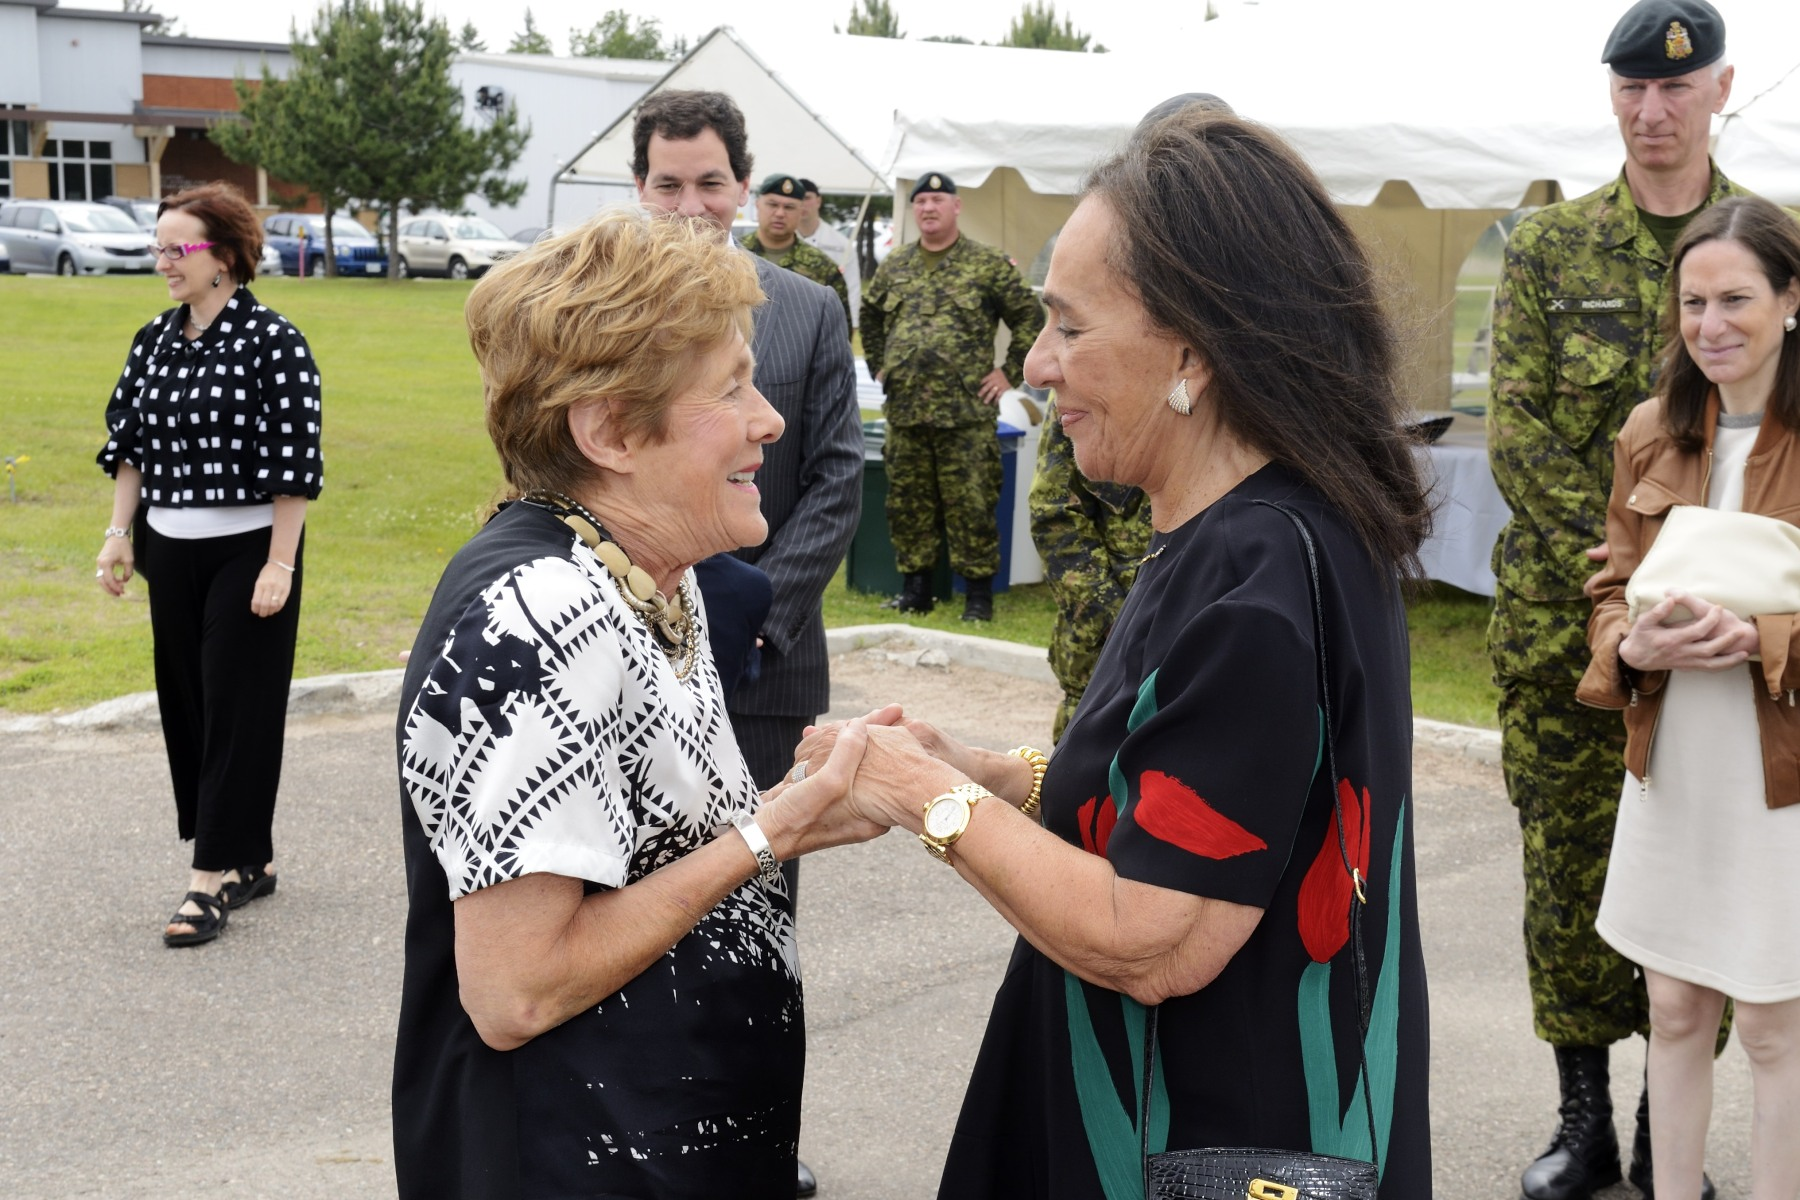 Upon arrival at Garrison Petawawa, Her Excellency Sharon Johnston was greeted by Mrs. Sandra Rotman (right), spouse of the late Joseph Rotman, Chair of the Canada Council for the Arts.